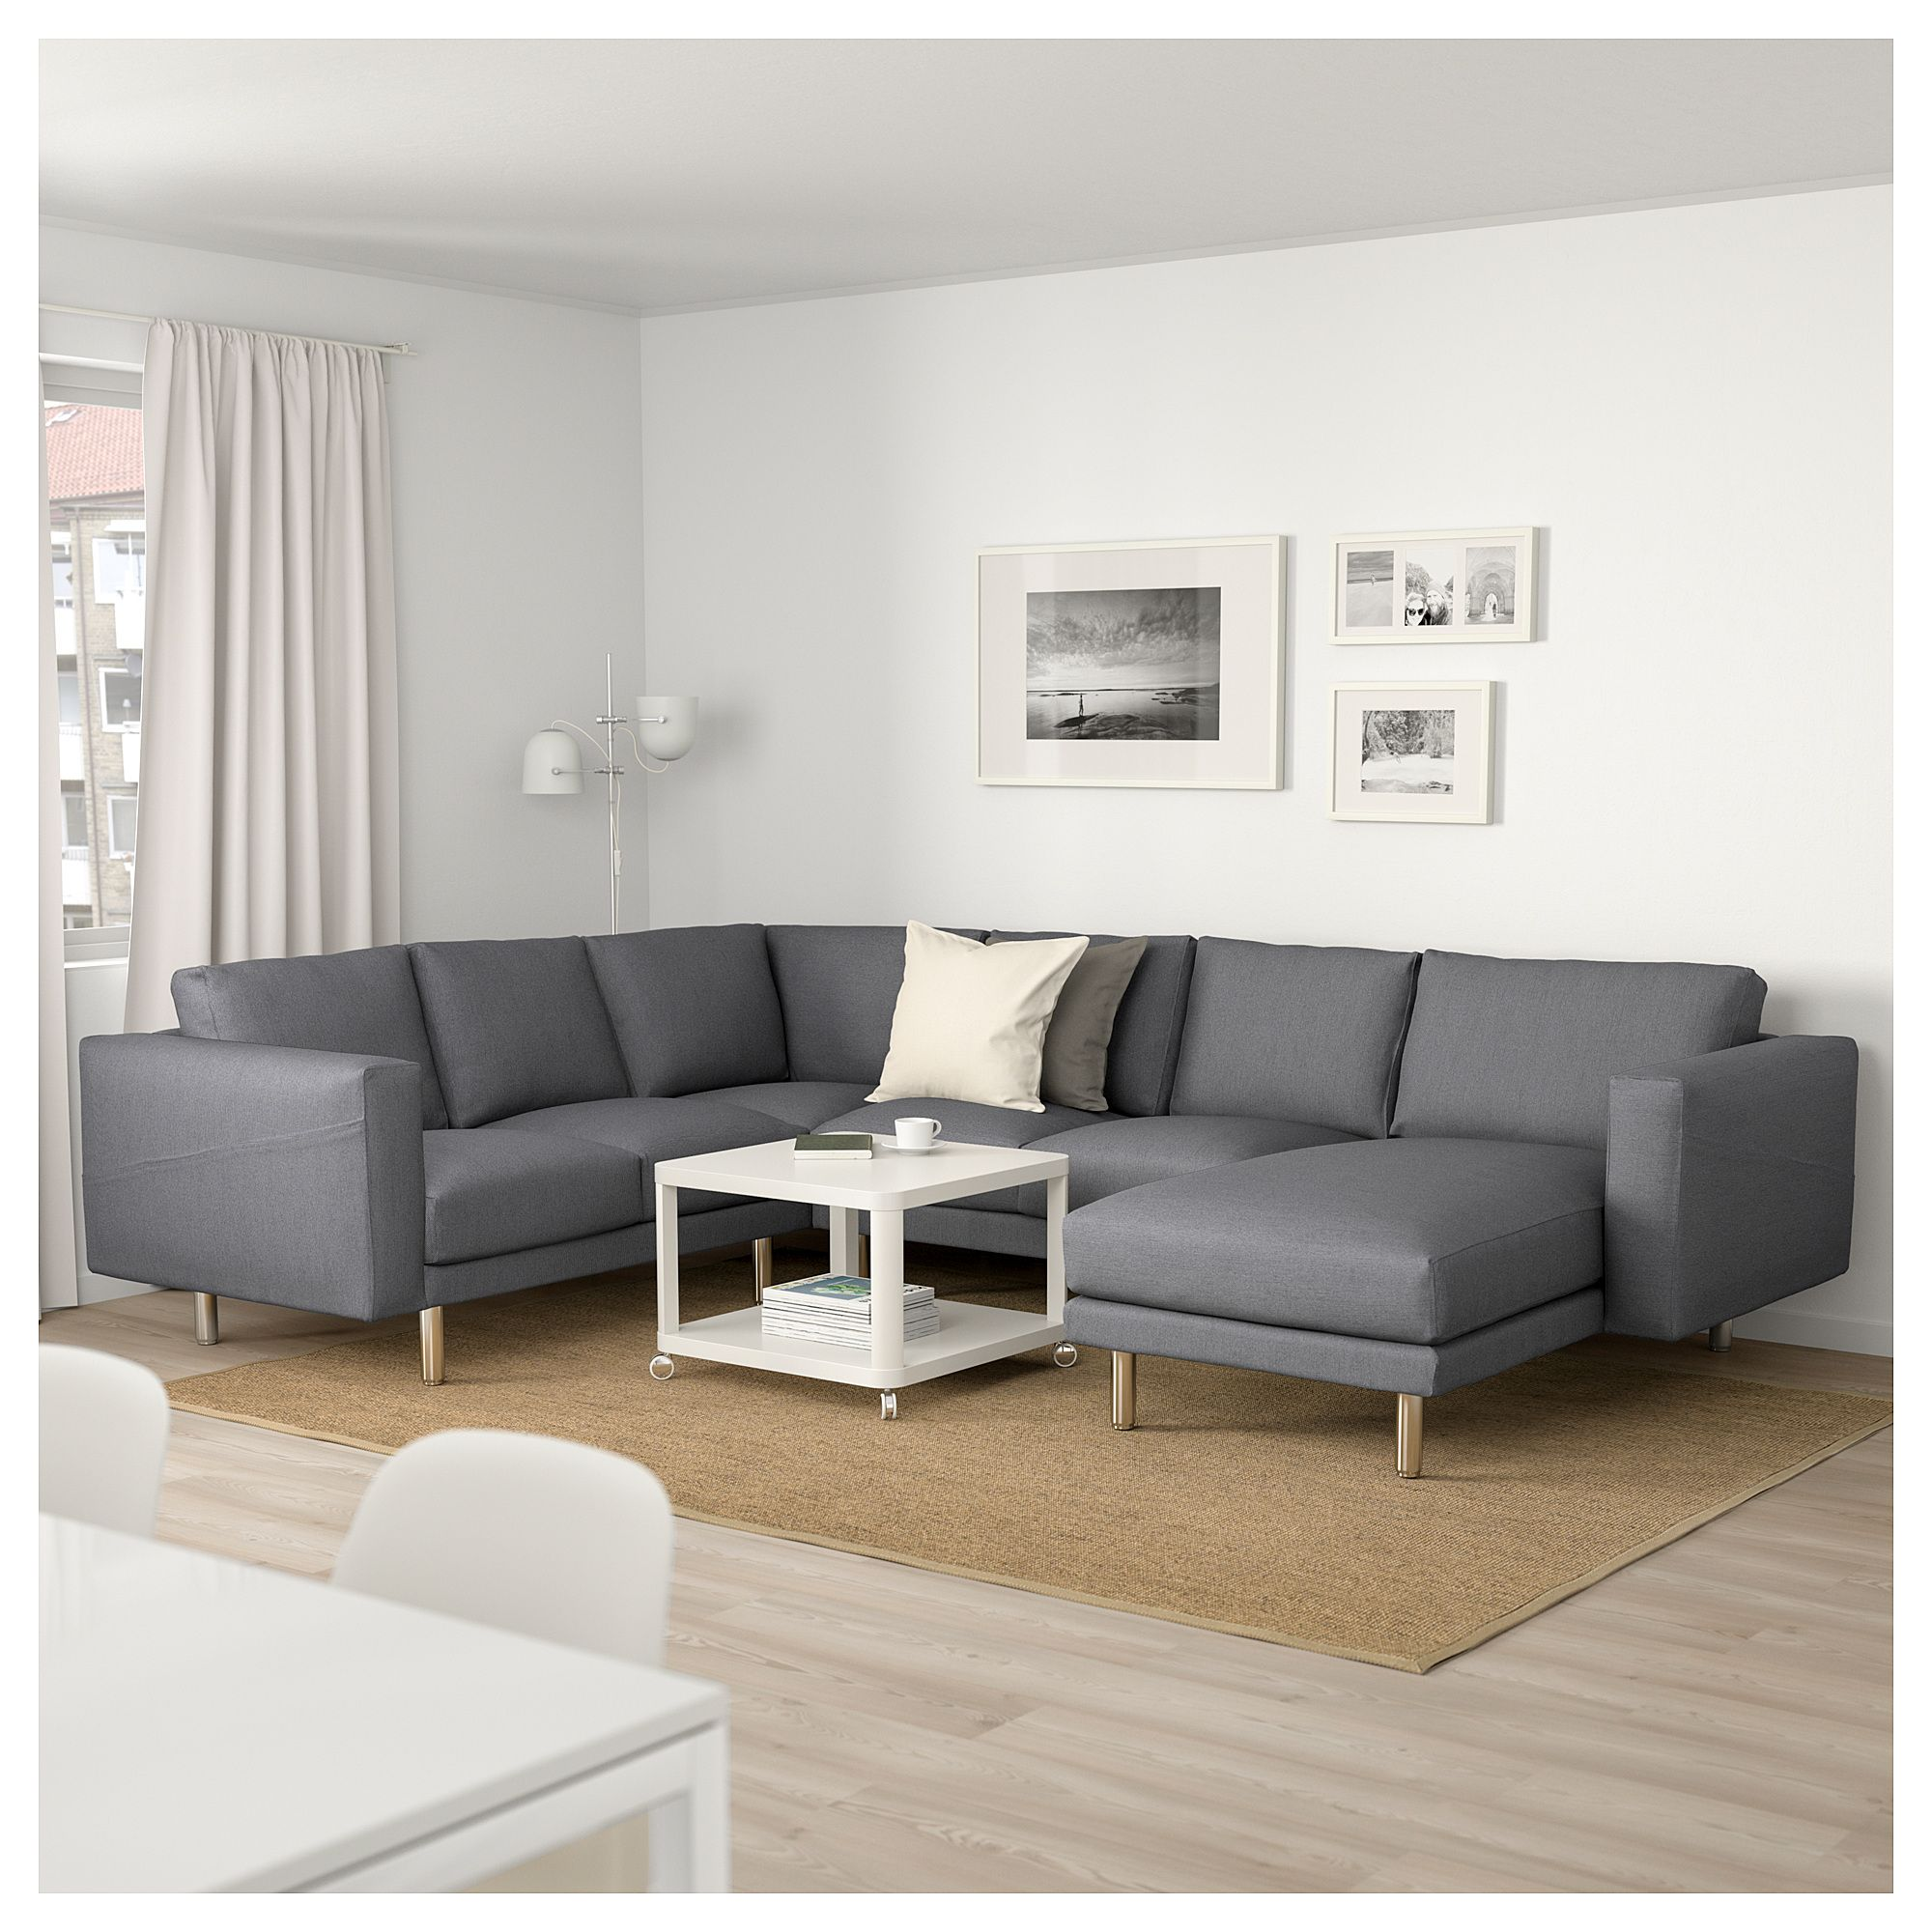 Friheten Hoekslaapbank Skiftebo Donkergrijs.Furniture And Home Furnishings Products Norsborg Ikea Corner